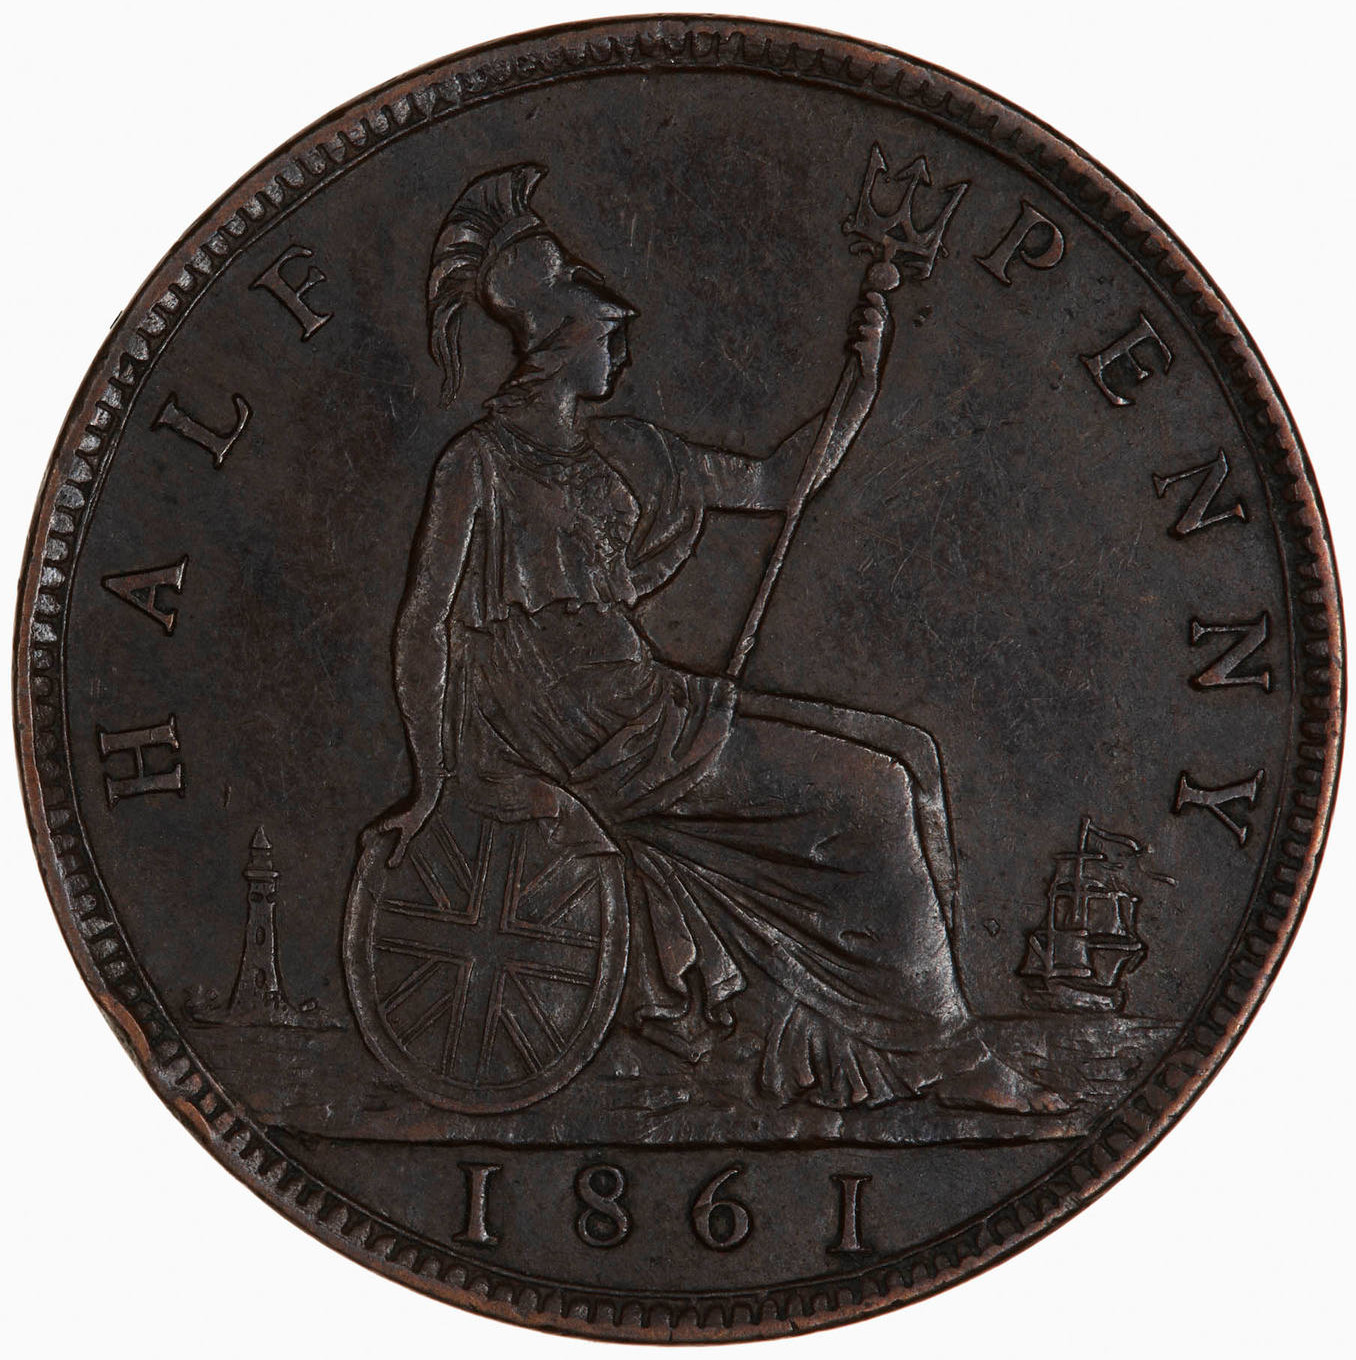 Halfpenny 1861: Photo Coin - Halfpenny, Queen Victoria, Great Britain, 1861